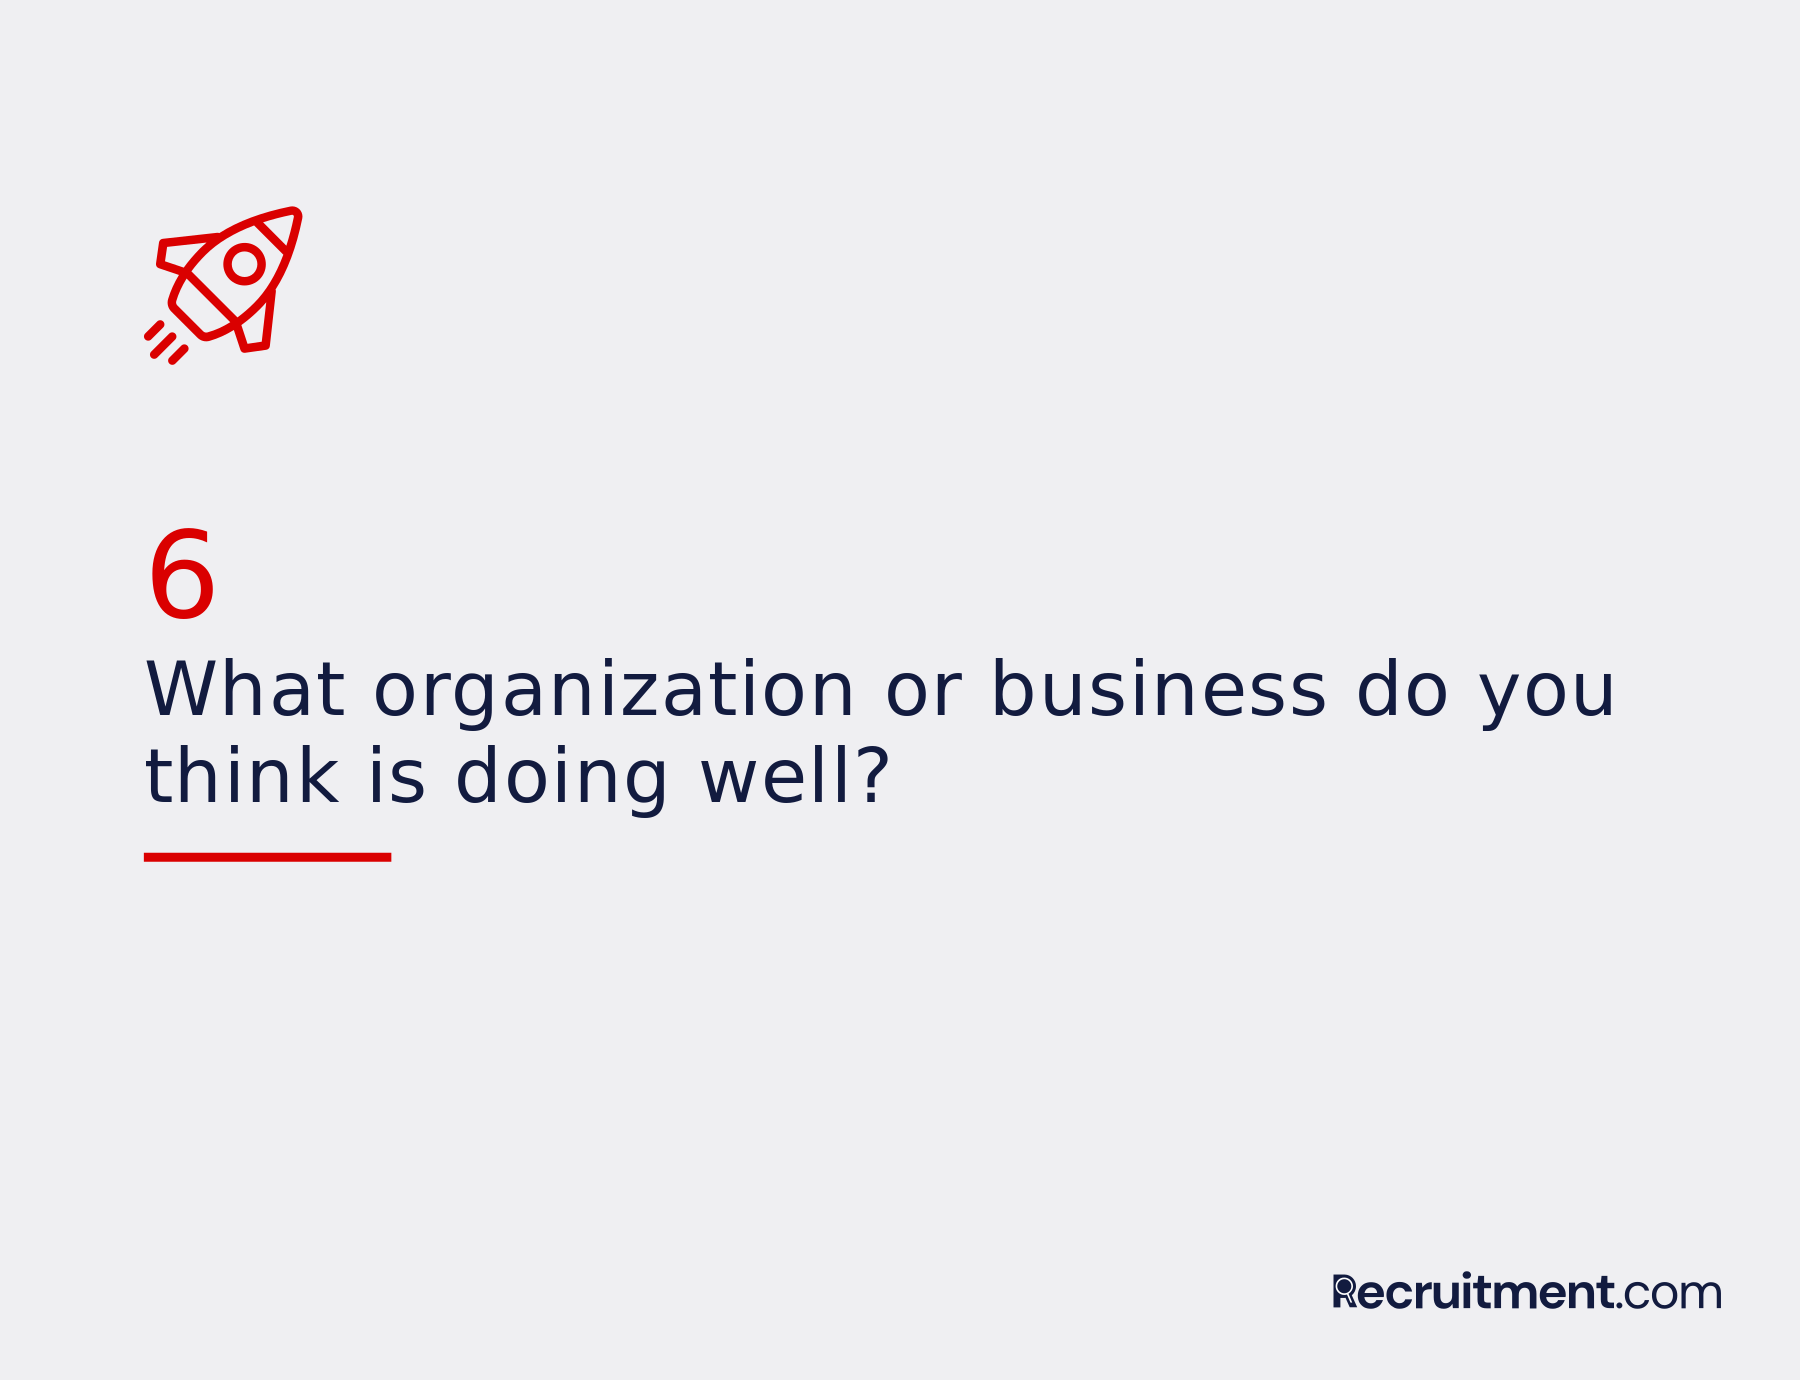 Common interview question 6: What organization or business is doing well?